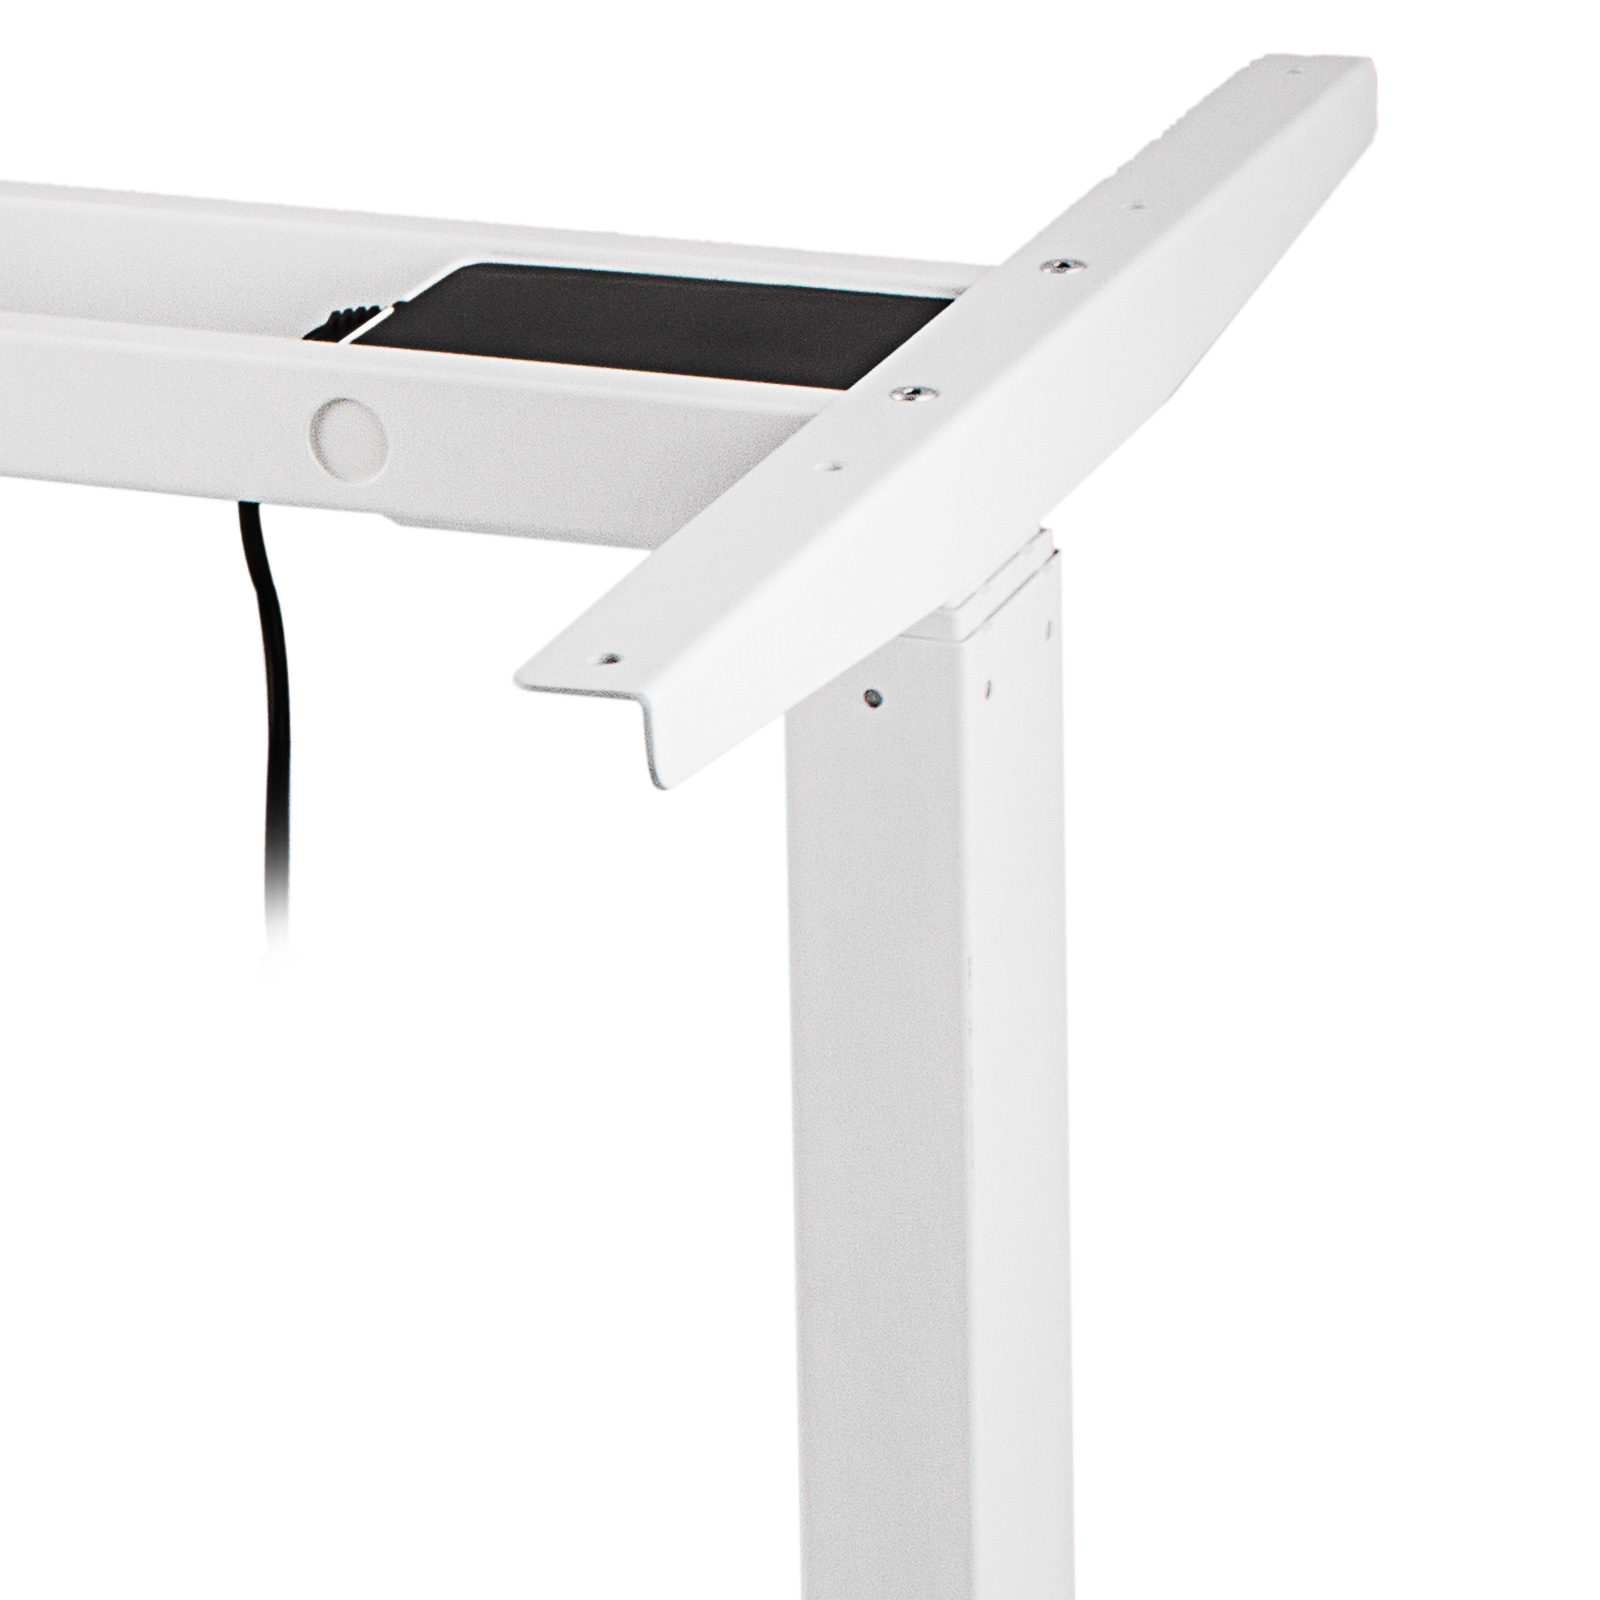 Electric-Sit-Stand-Standing-Desk-Frame-Dual-Motor-Stable-Heavy-Duty-Premium thumbnail 44